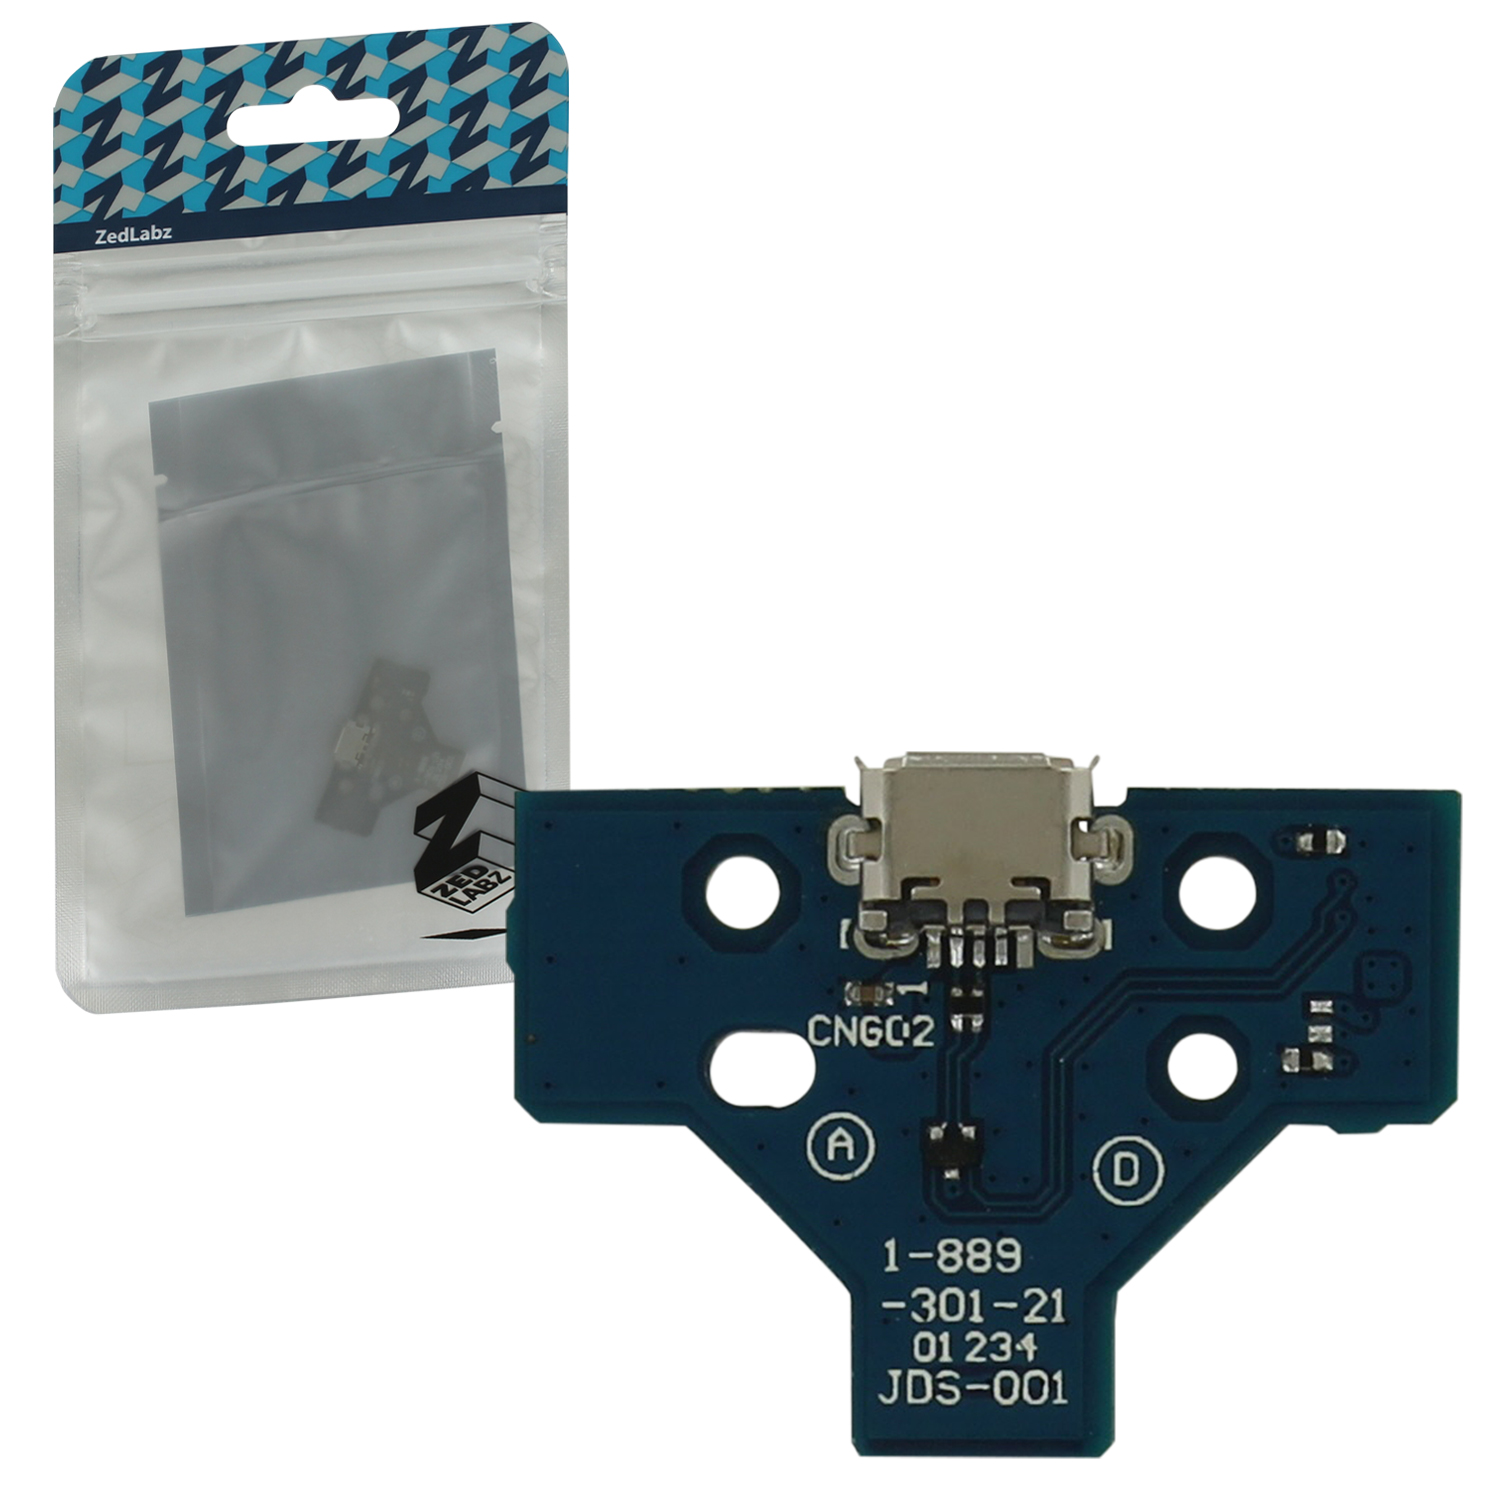 Zedlabz 14 Pin V1 Micro Usb Charging Socket Ic Board For Sony Ps4 Controllers Jds-001